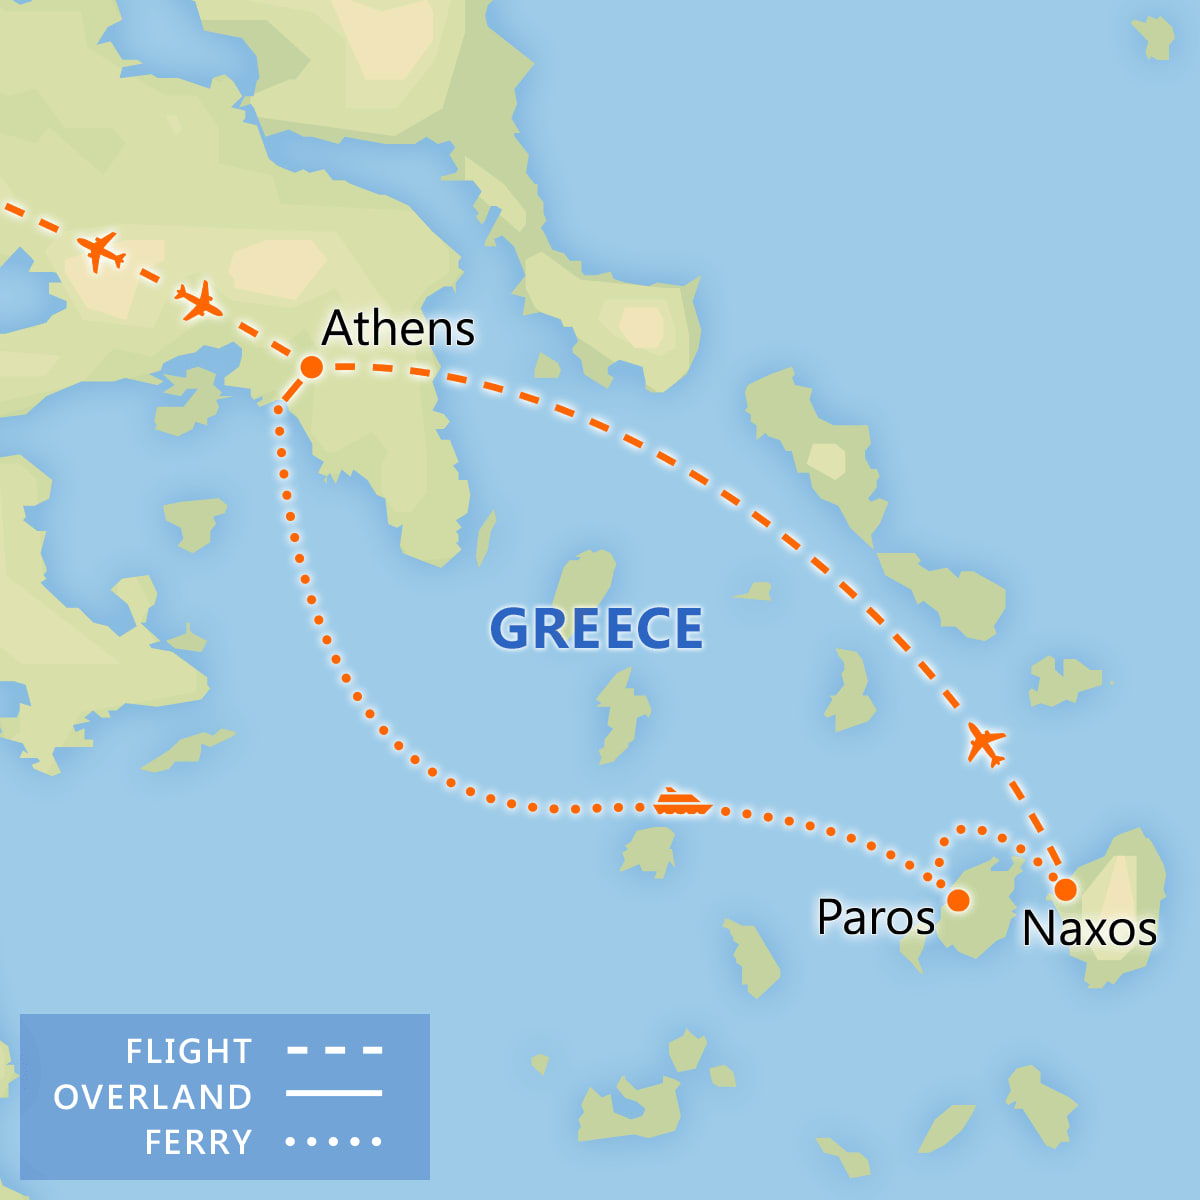 Athens, Paros & Naxos Adventure map